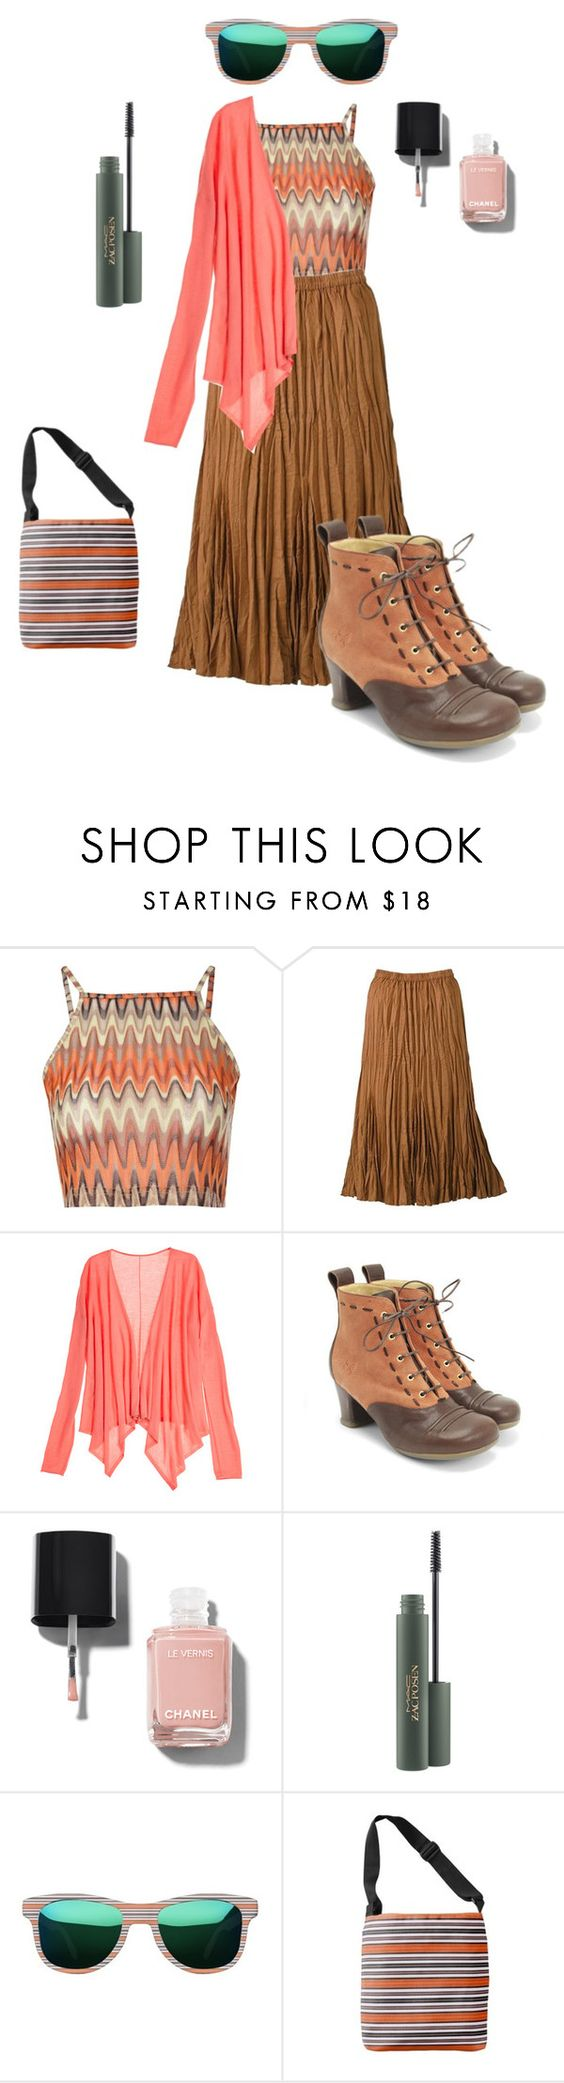 """""""me"""" by shelli-fitzpatrick ❤ liked on Polyvore featuring Glamorous, TravelSmith, Calypso St. Barth, John Fluevog, Chanel, MyFashionStyle and plus size clothing"""